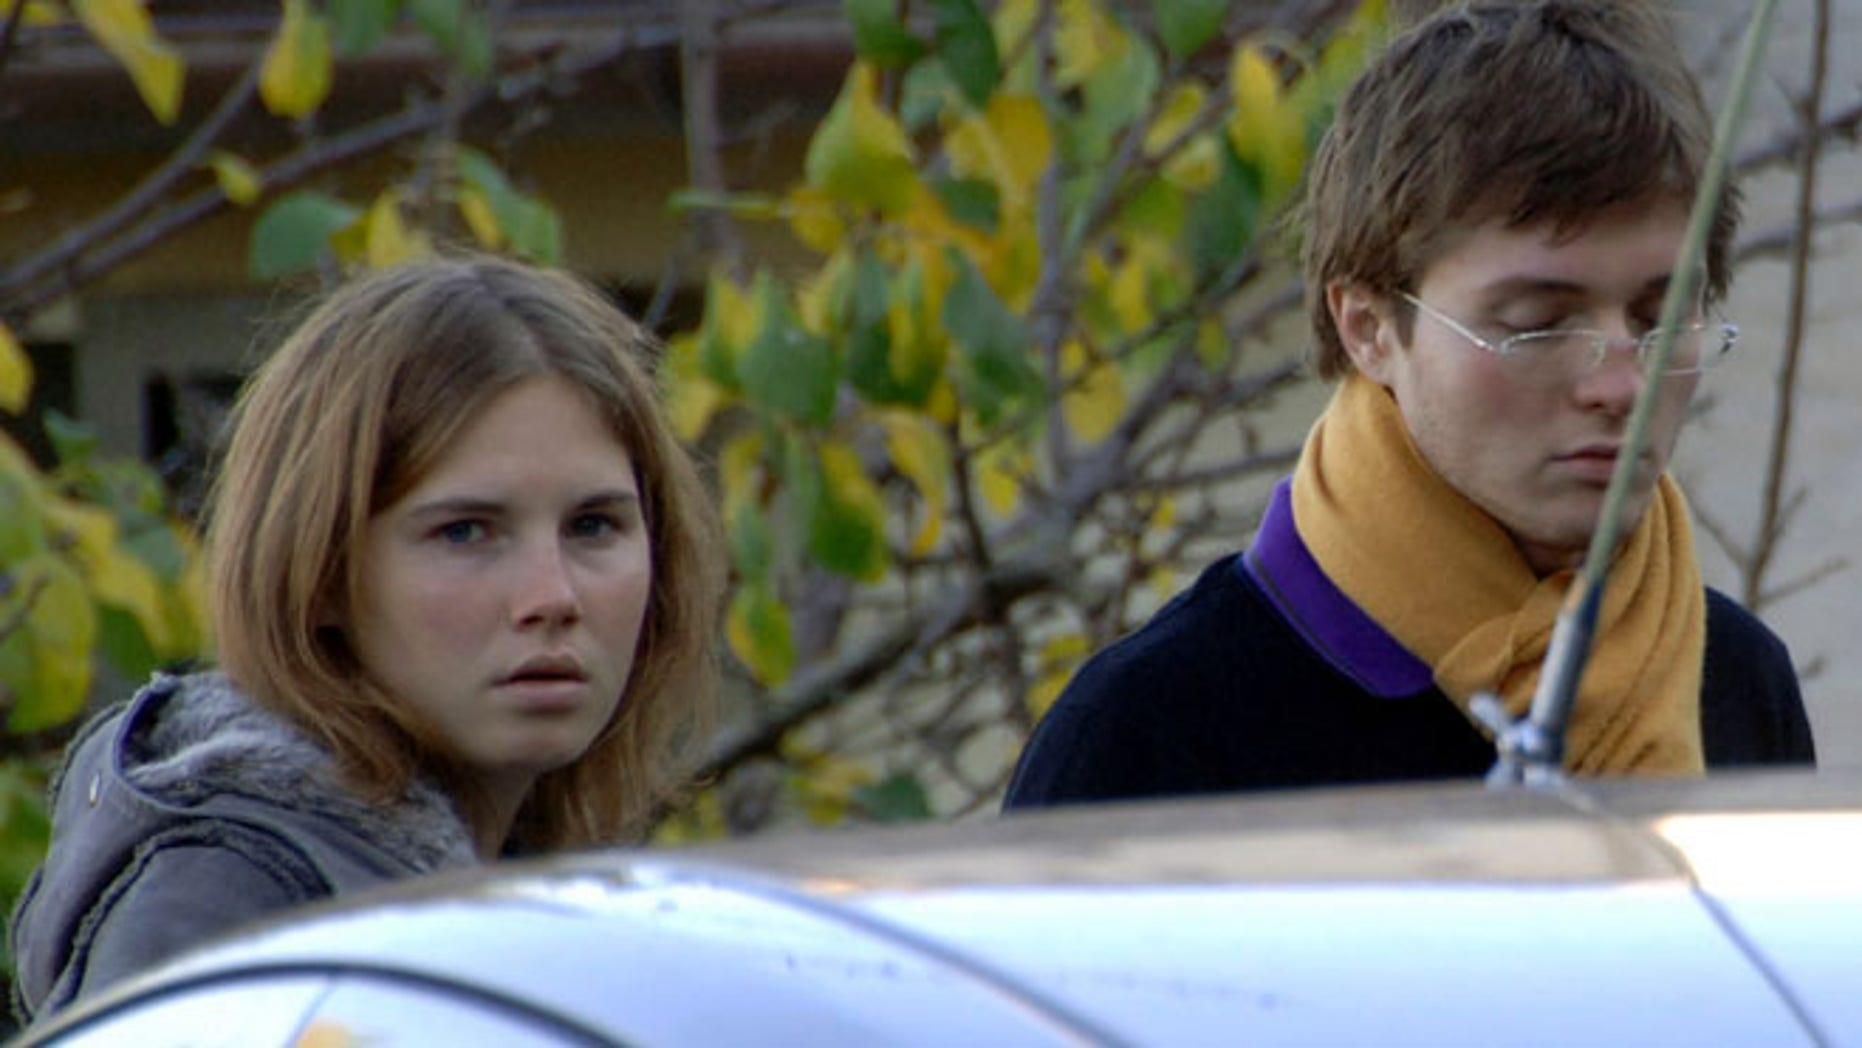 In this Friday Nov. 2, 2007 file photo Amanda Marie Knox, left, and Raffaele Sollecito, stand outside the rented house where 21-year-old British student Meredith Kercher was found dead Friday, in Perugia, Italy. The state's prosecutor is arguing his case that an appeals court should reinstate the guilty verdict against U.S. exchange student Amanda Knox for the grisly 2007 murder of her roommate.